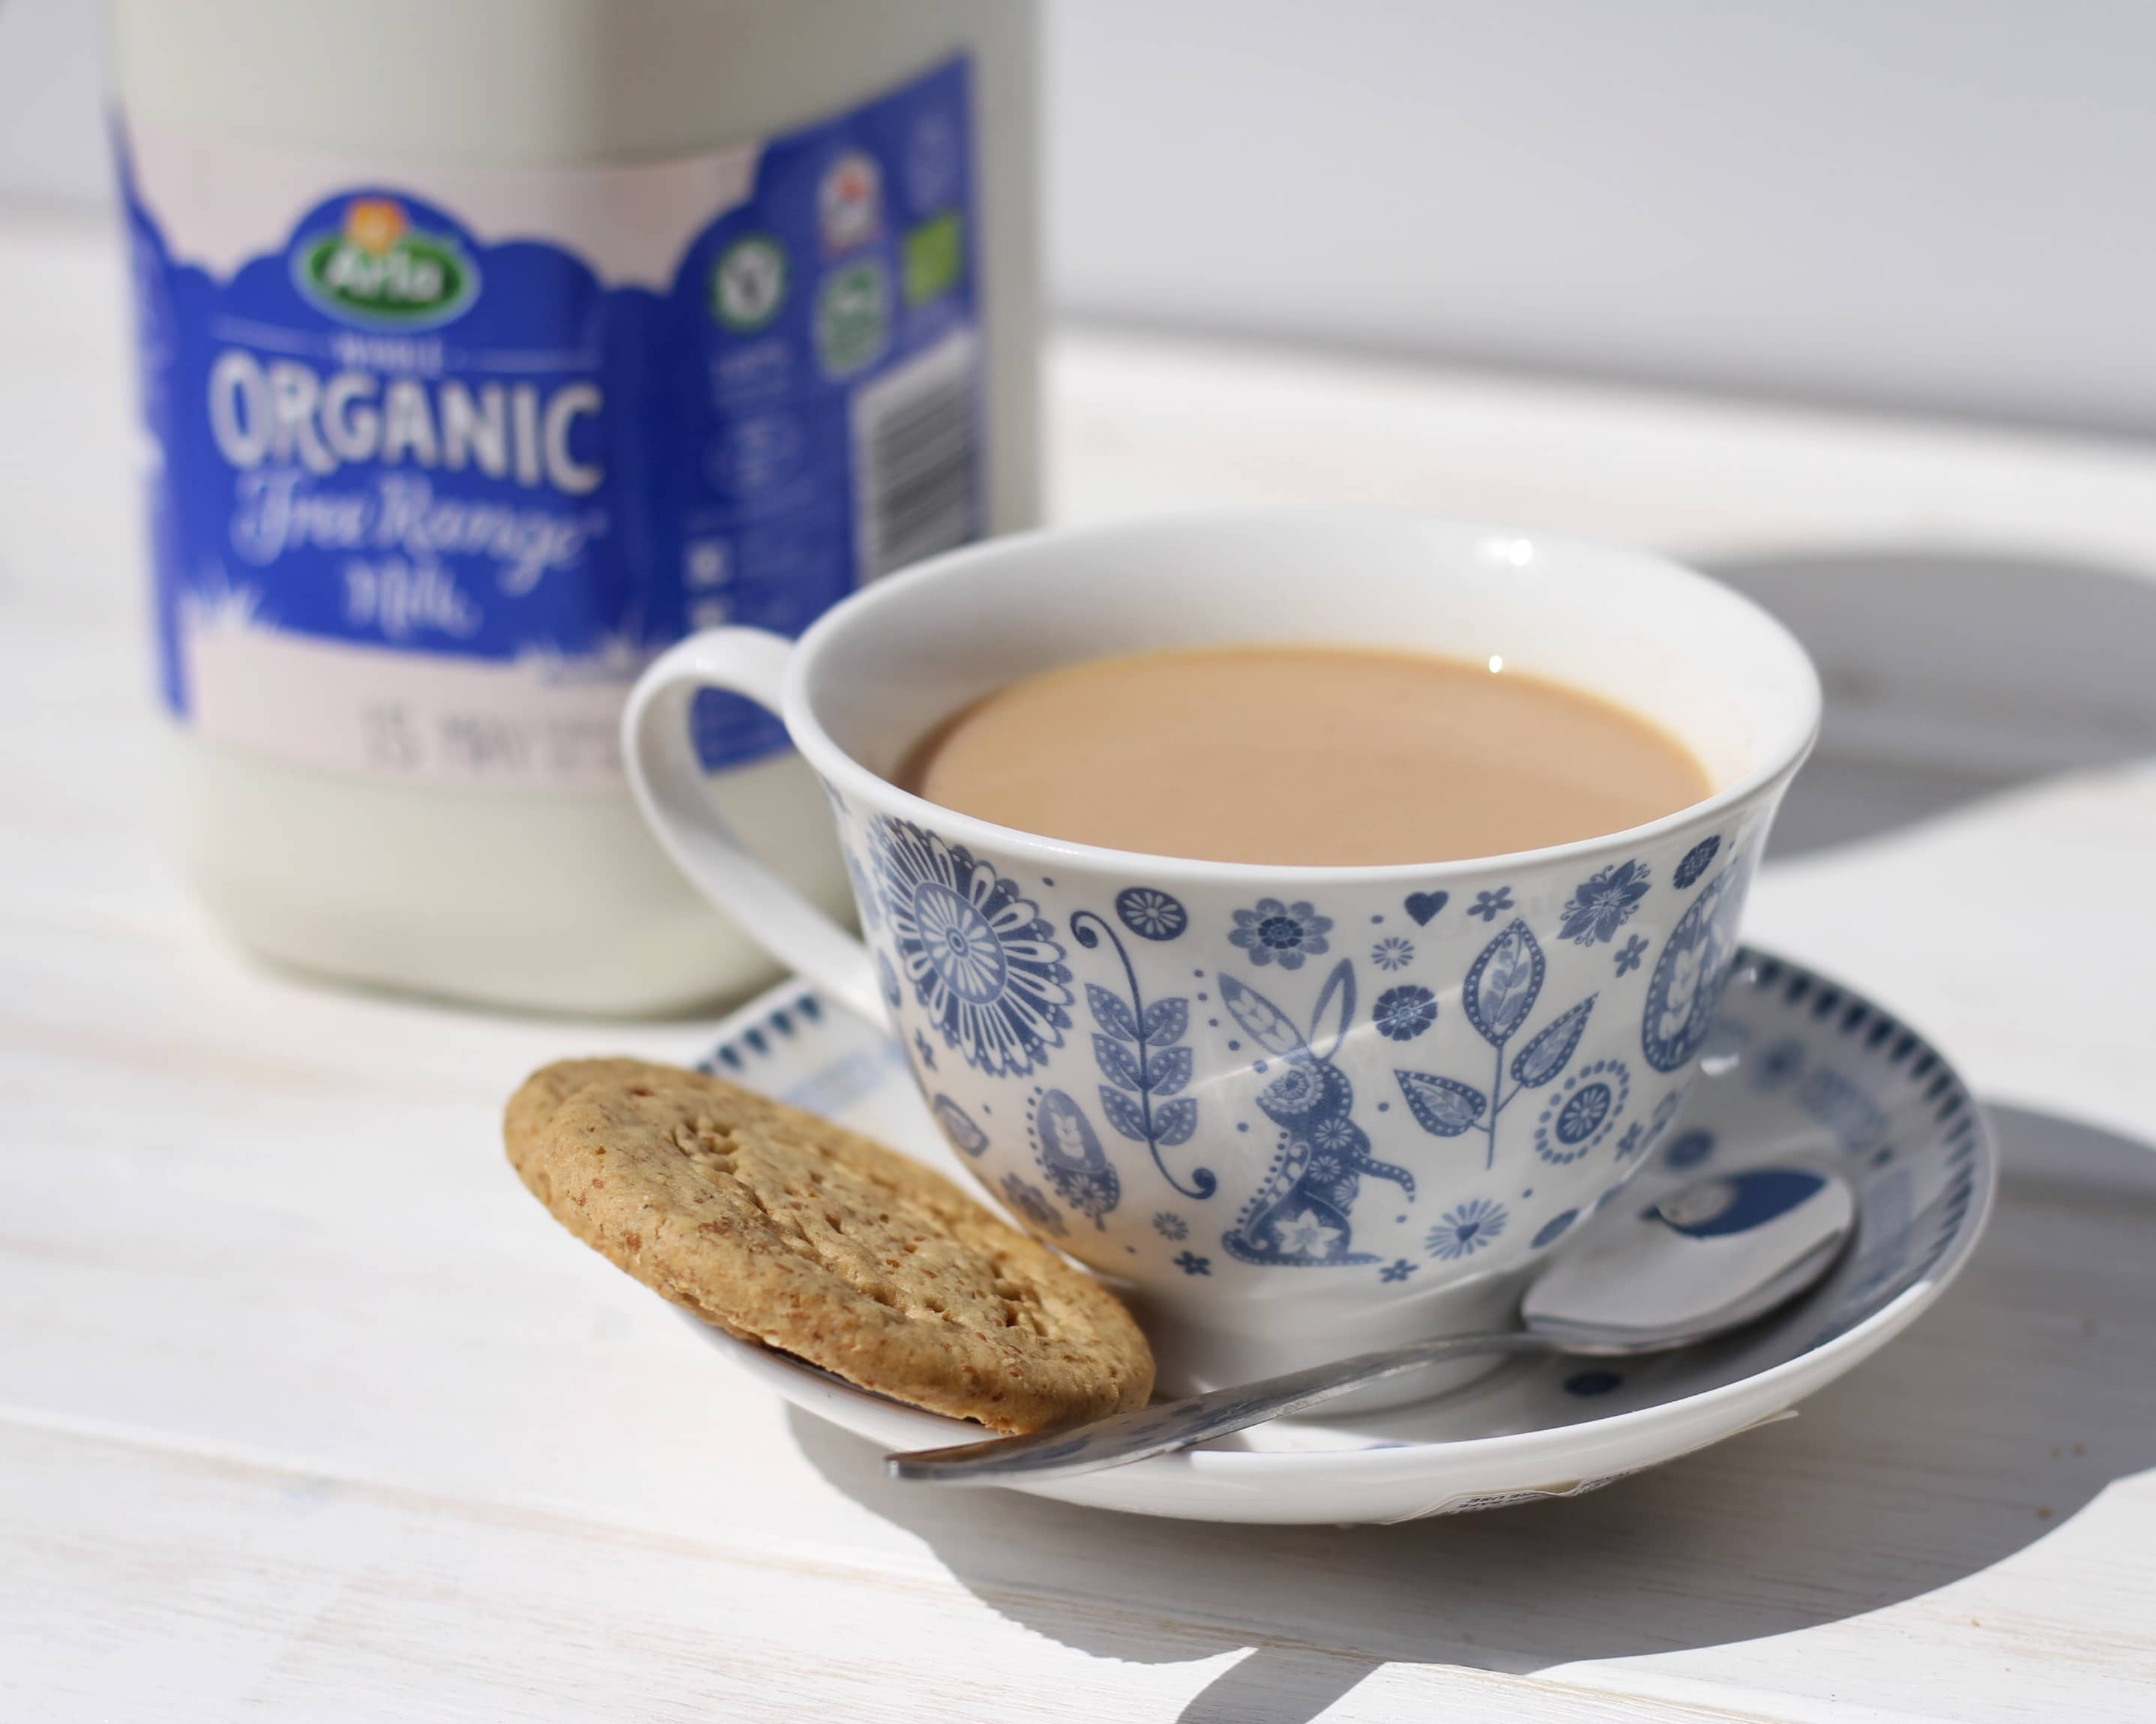 Tea in teacup with biscuits and Arla organic milk in the background